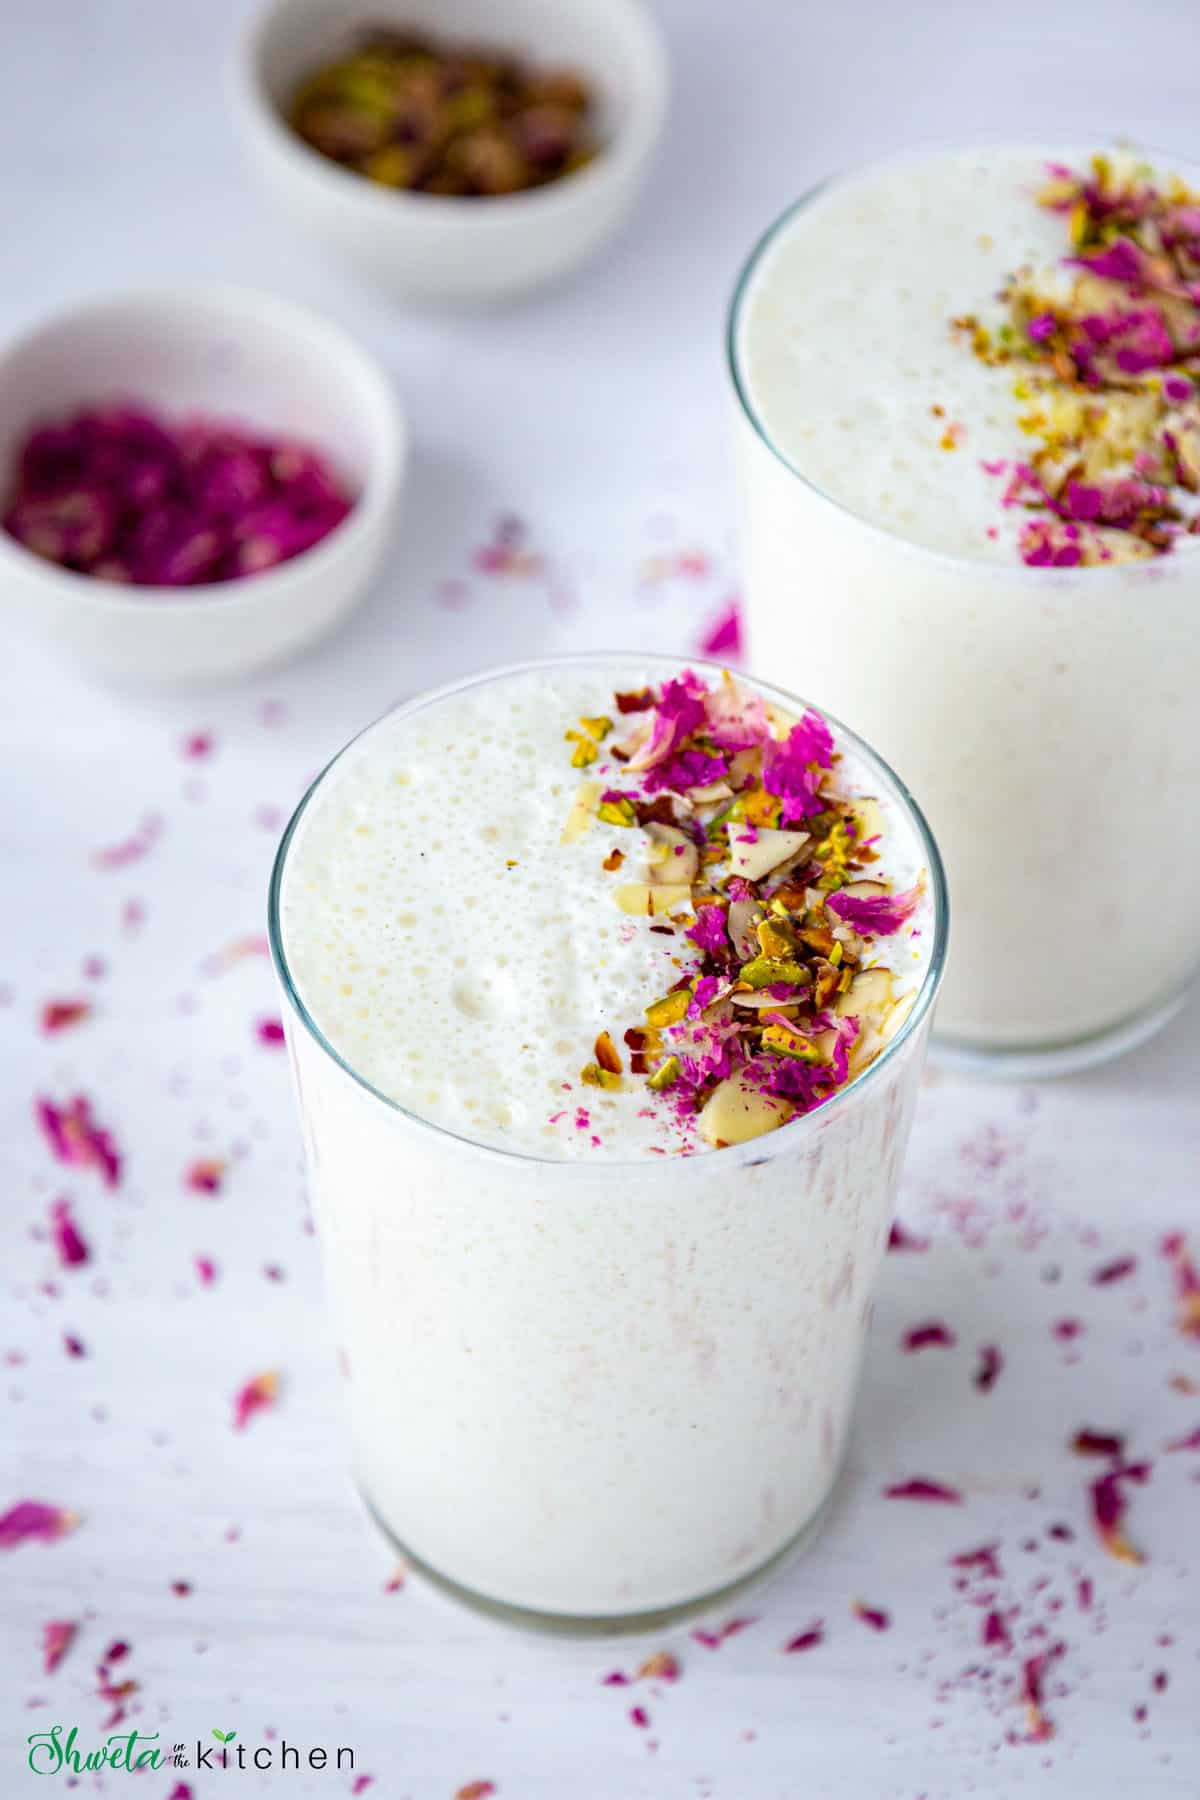 Two glass full of sweet lassi drink garnished with nuts and rose petals